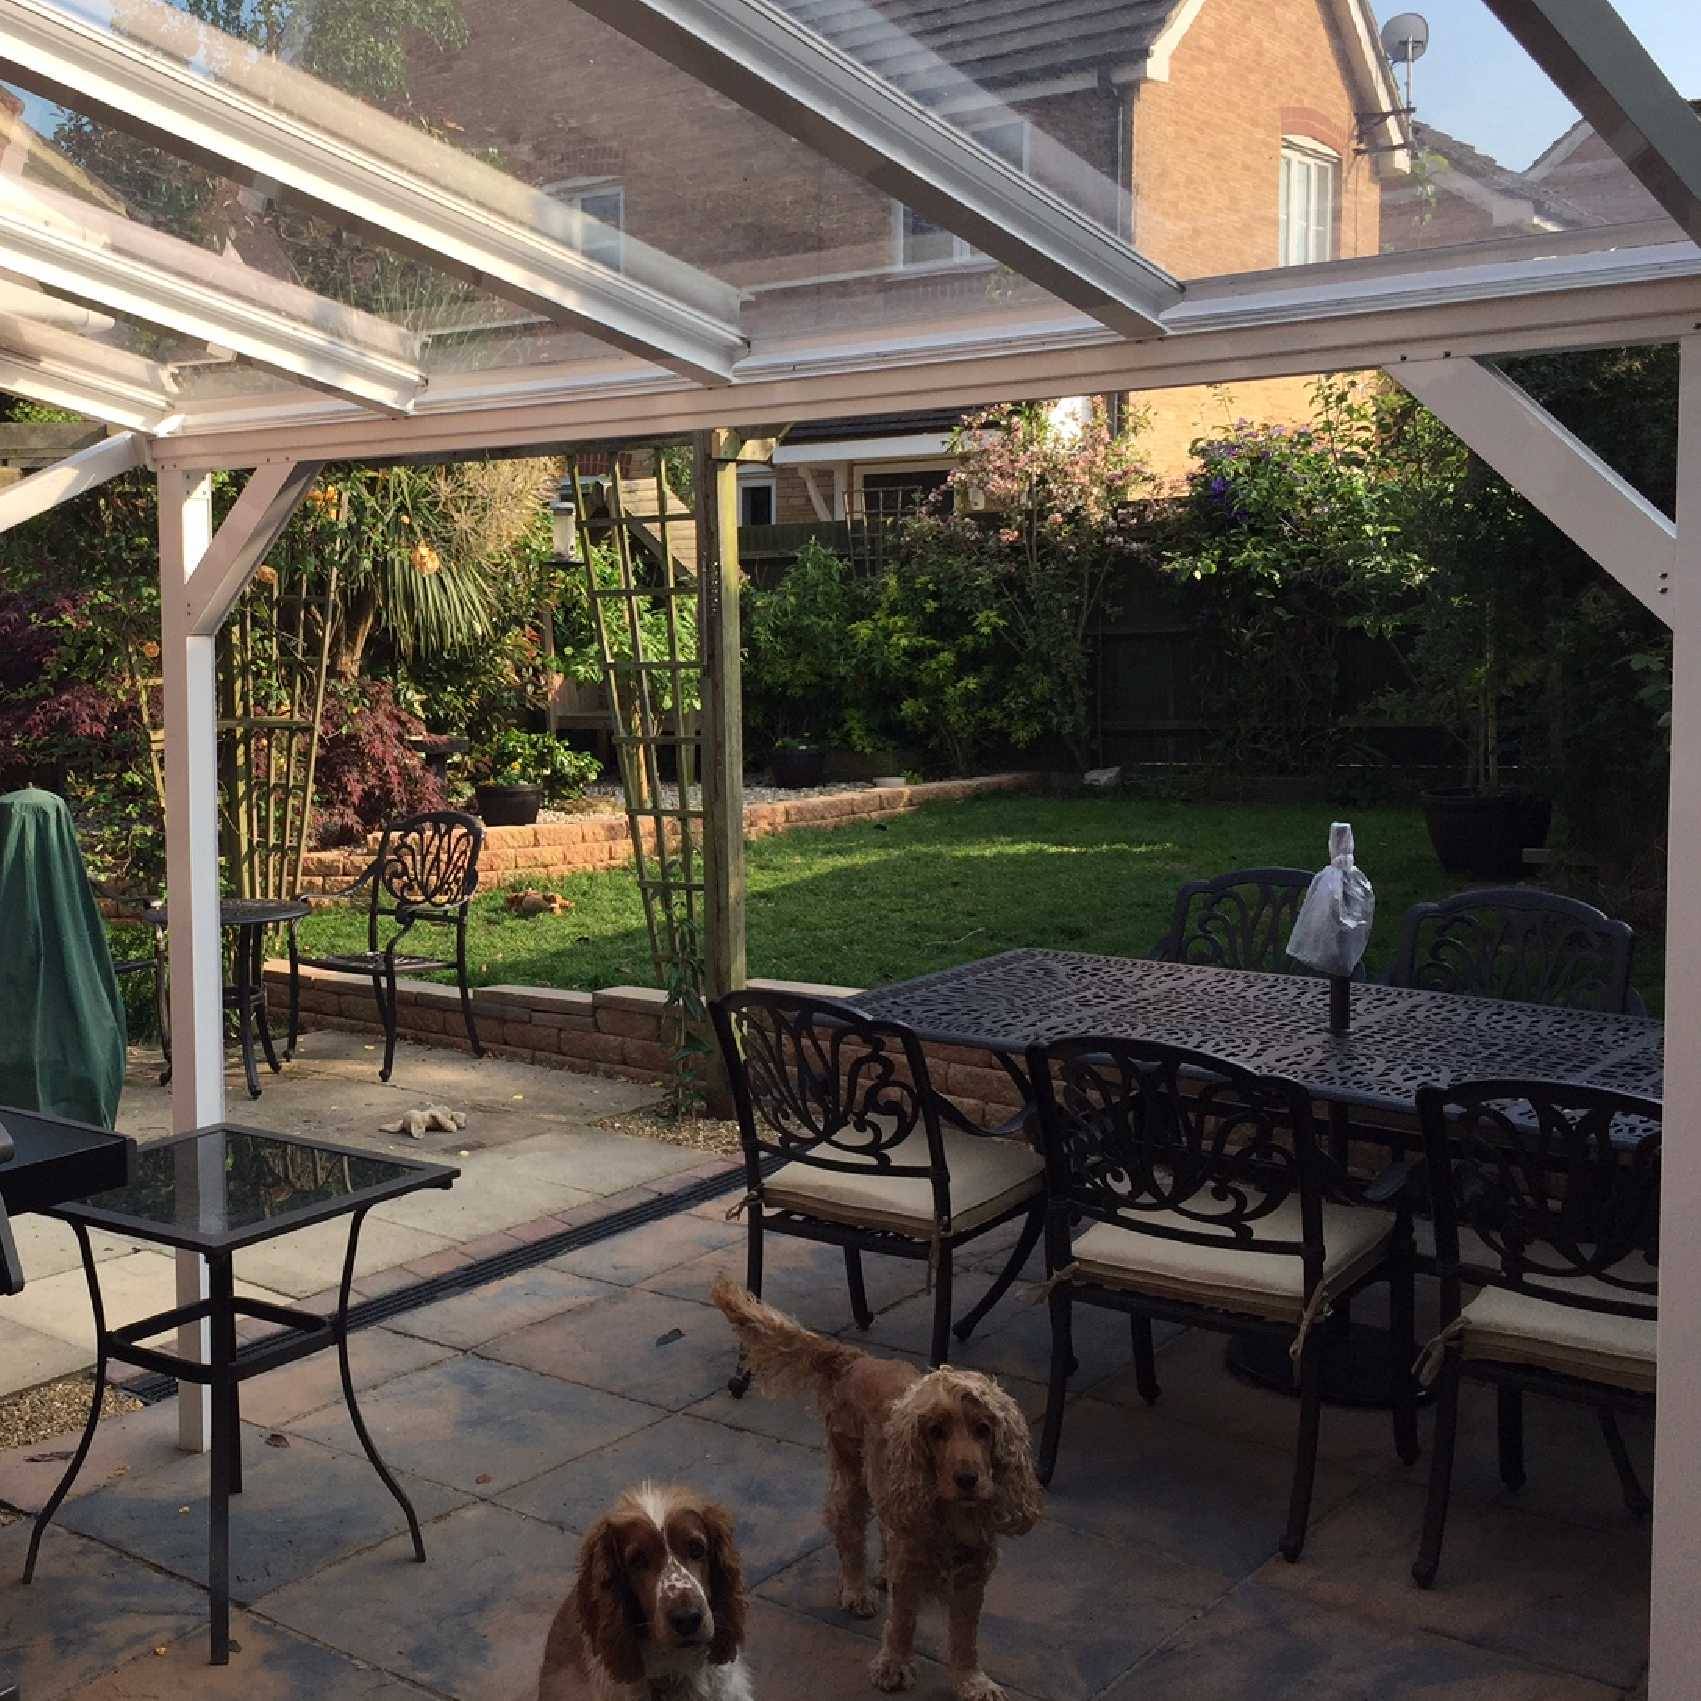 Affordable Omega Smart White Lean-To Canopy with 6mm Glass Clear Plate Polycarbonate Glazing - 7.7m (W) x 2.5m (P), (4) Supporting Posts